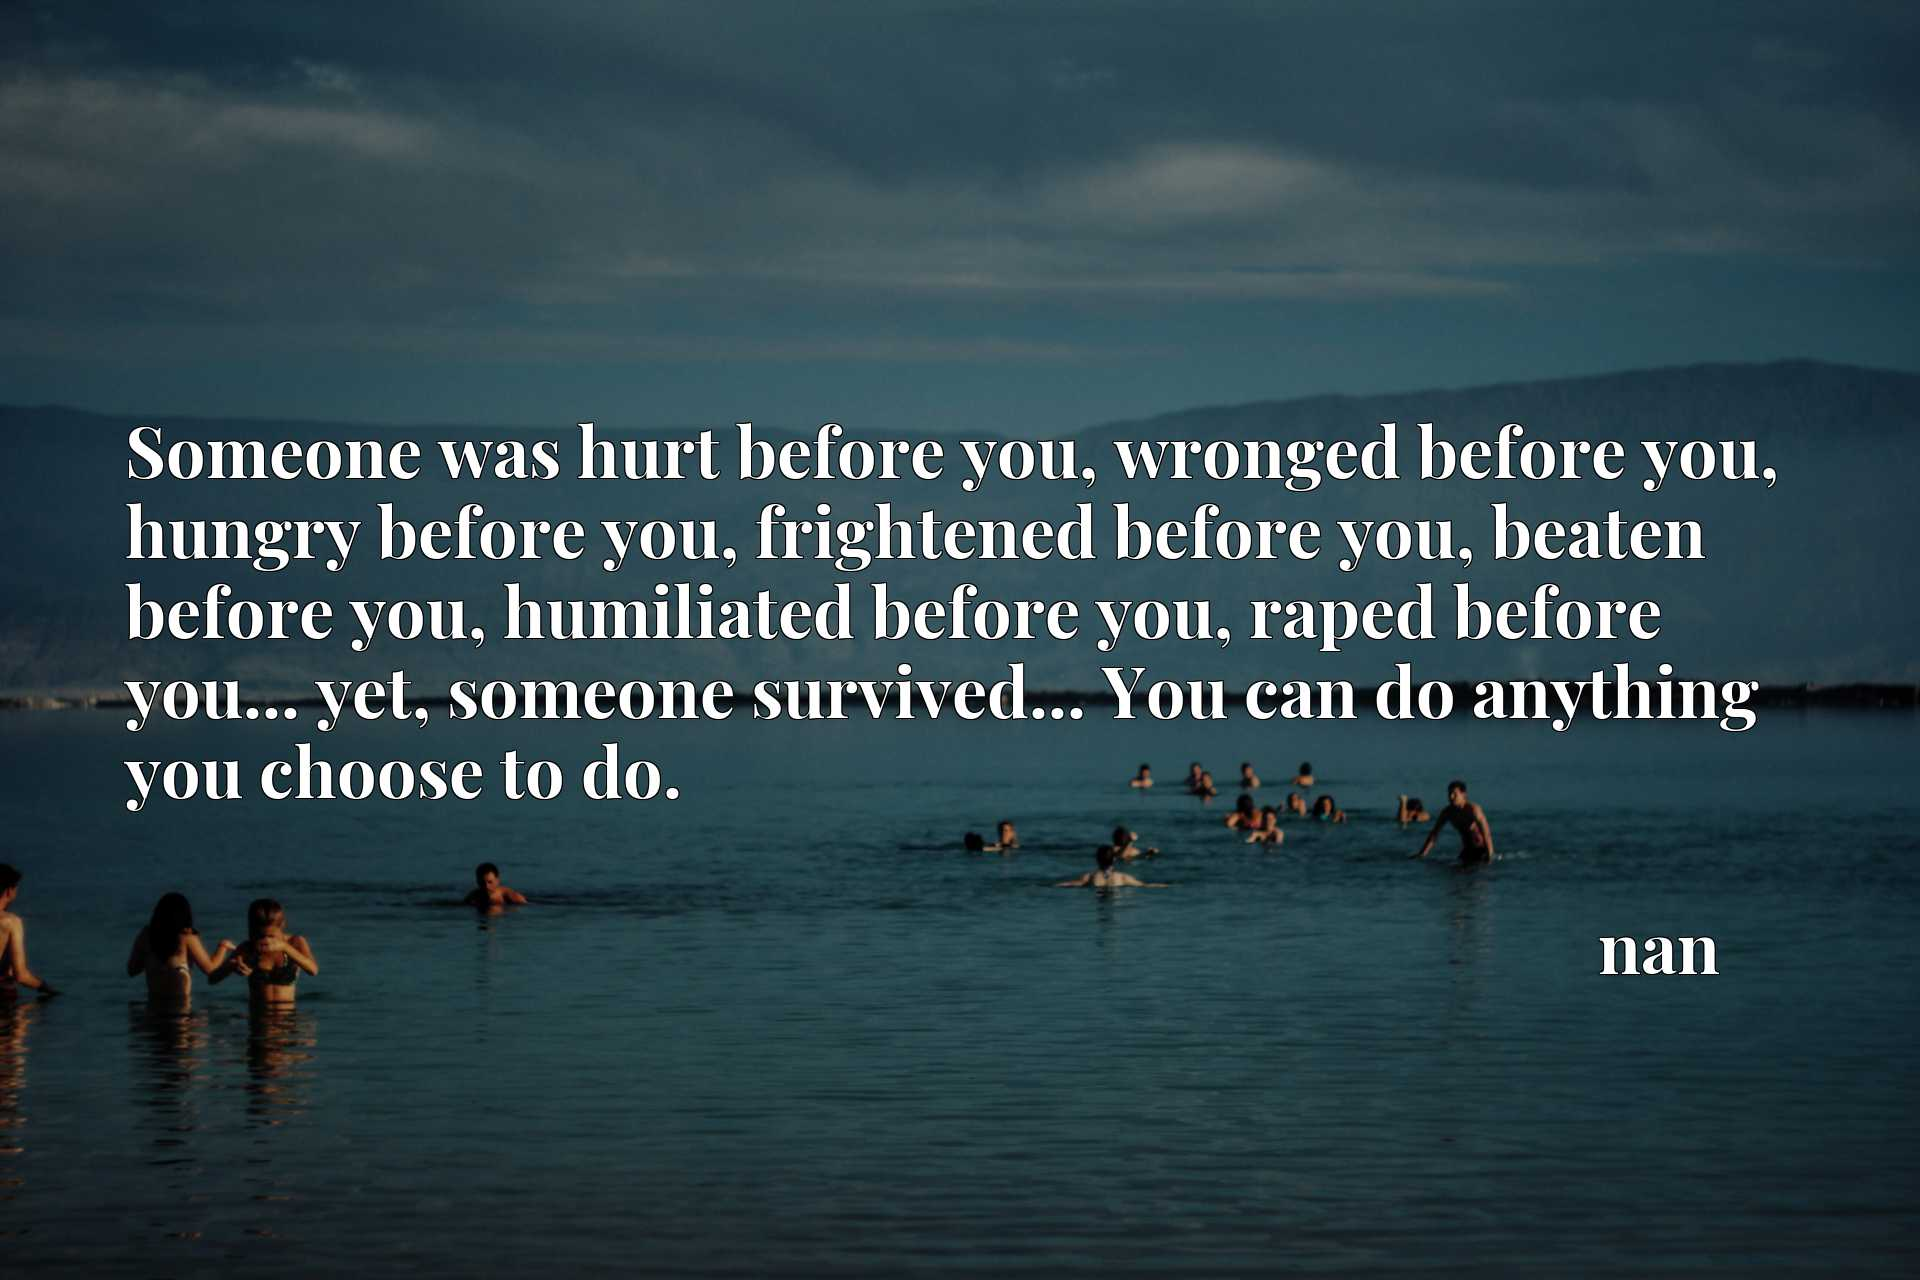 Someone was hurt before you, wronged before you, hungry before you, frightened before you, beaten before you, humiliated before you, raped before you... yet, someone survived... You can do anything you choose to do.